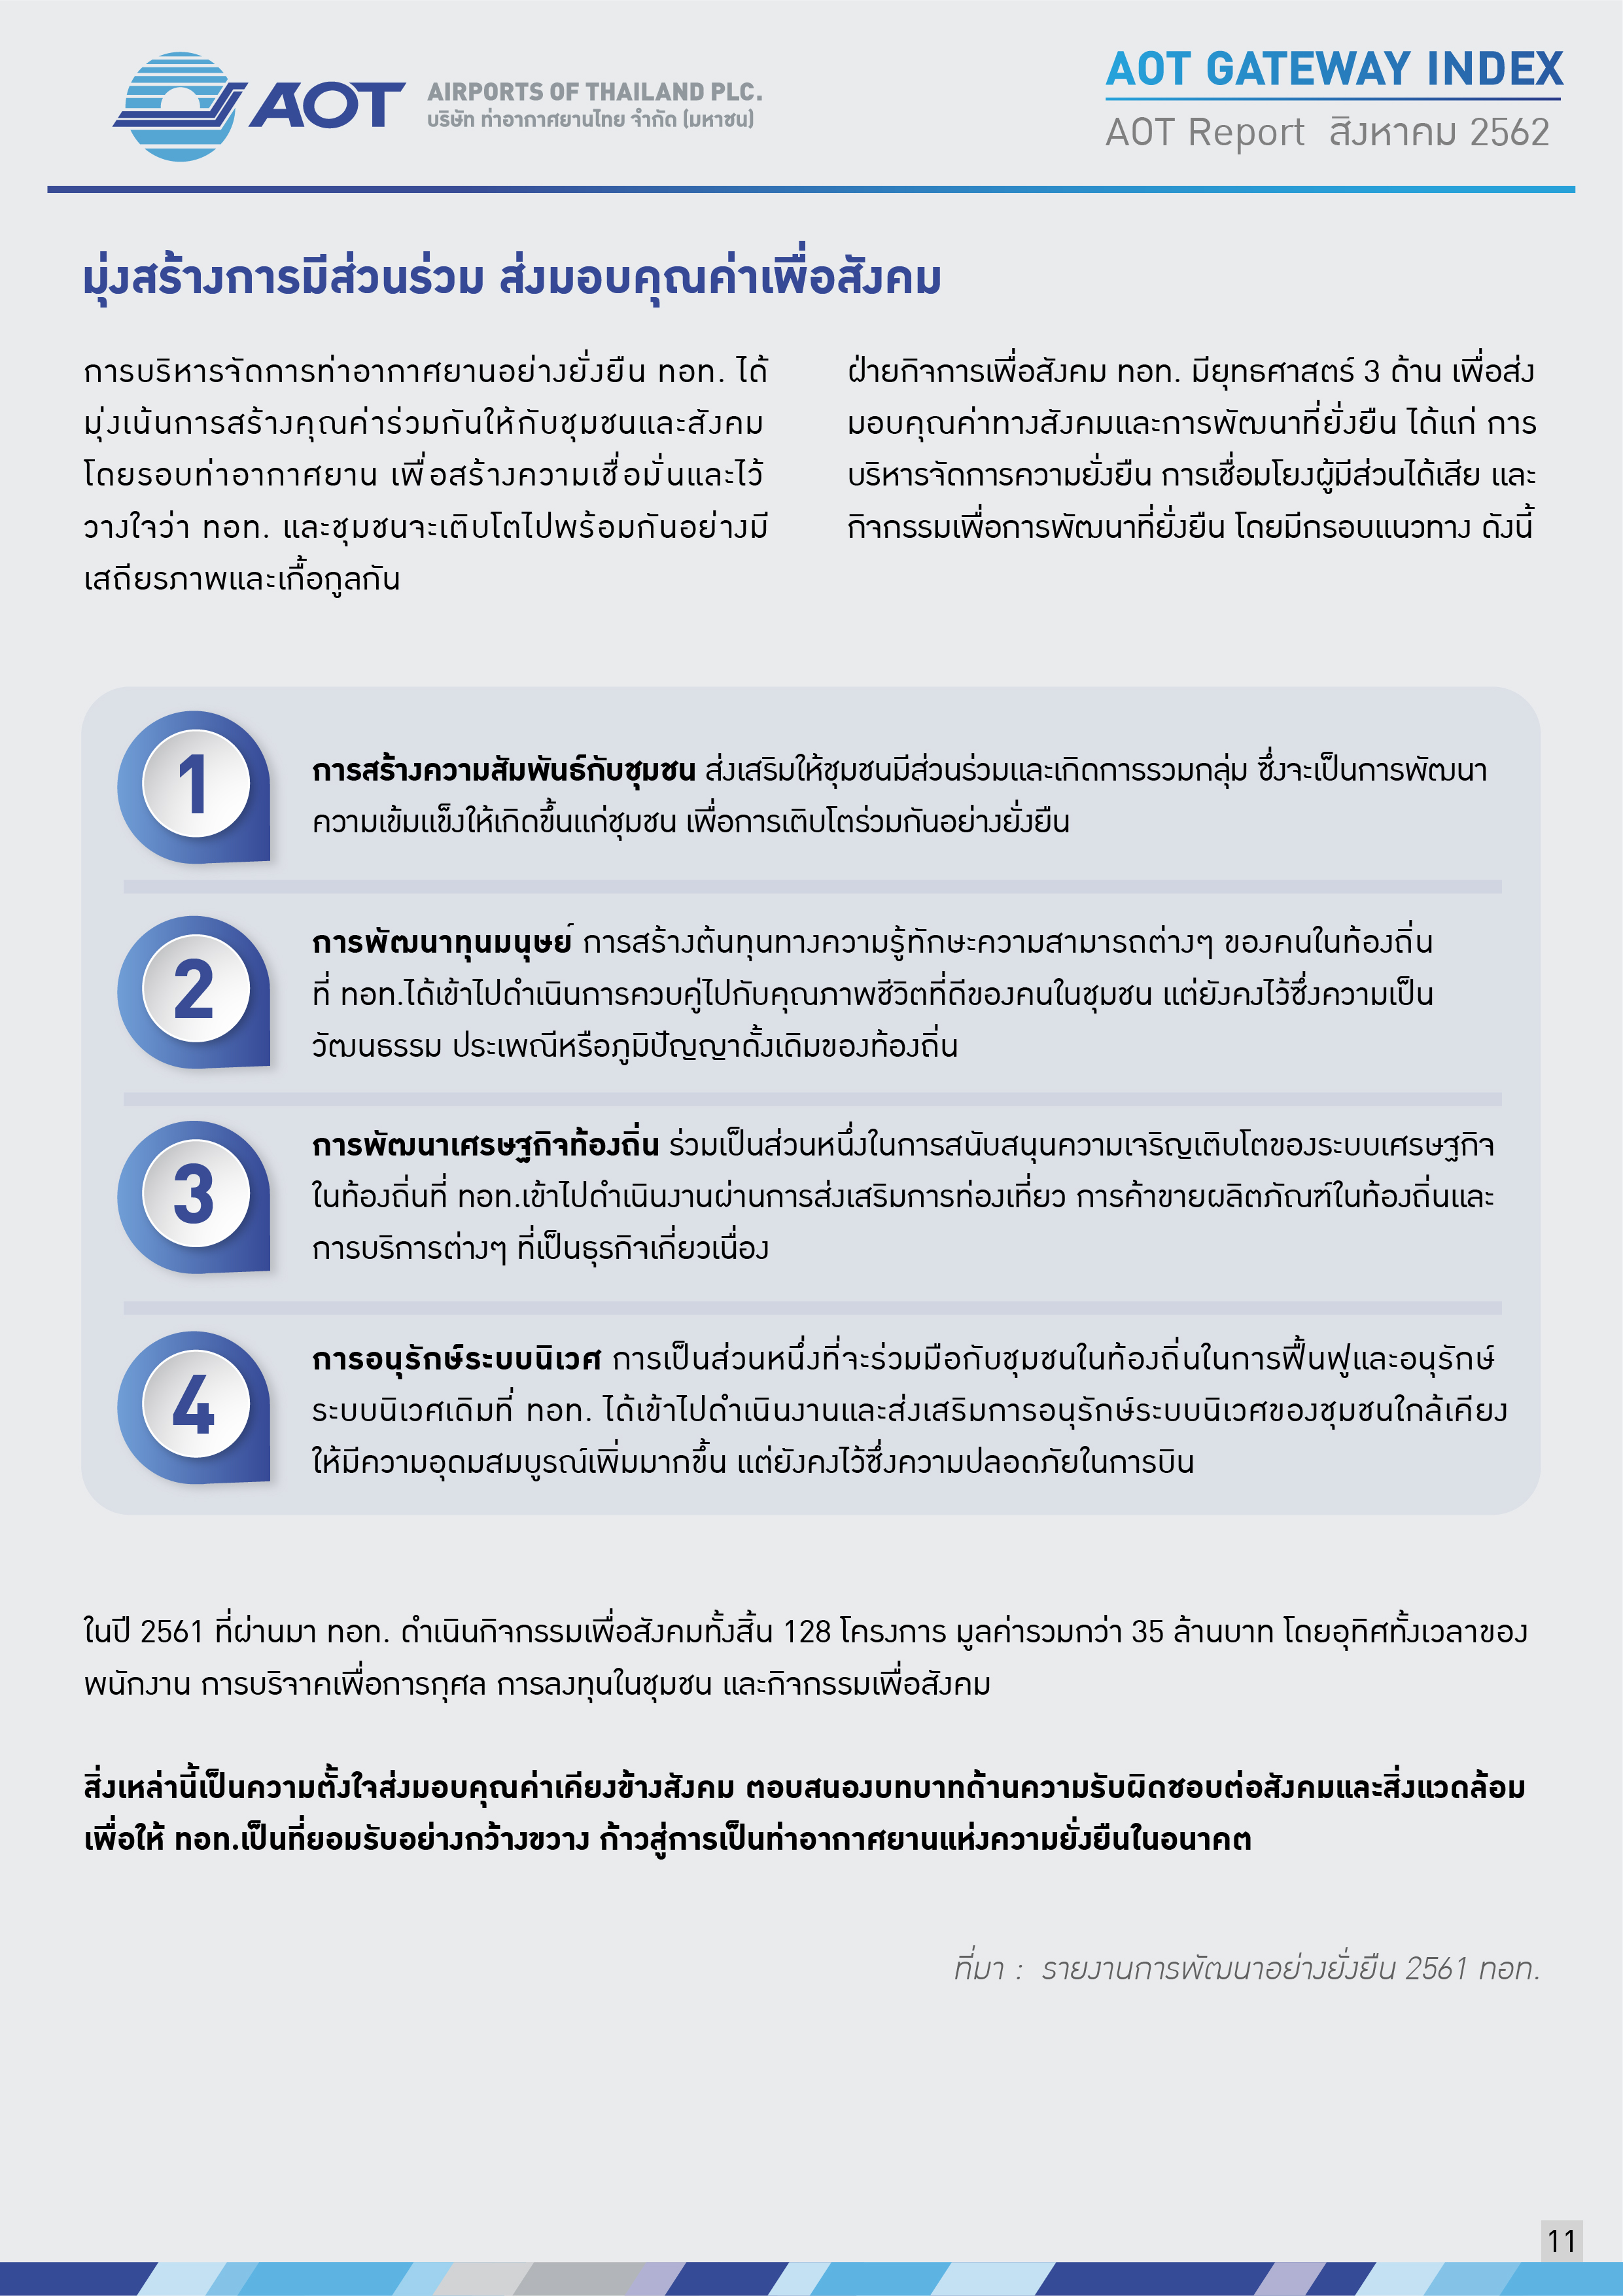 AOTcentent2019_Index 09_AOT เคียงคู่สังคม_V7_20191031_Page11